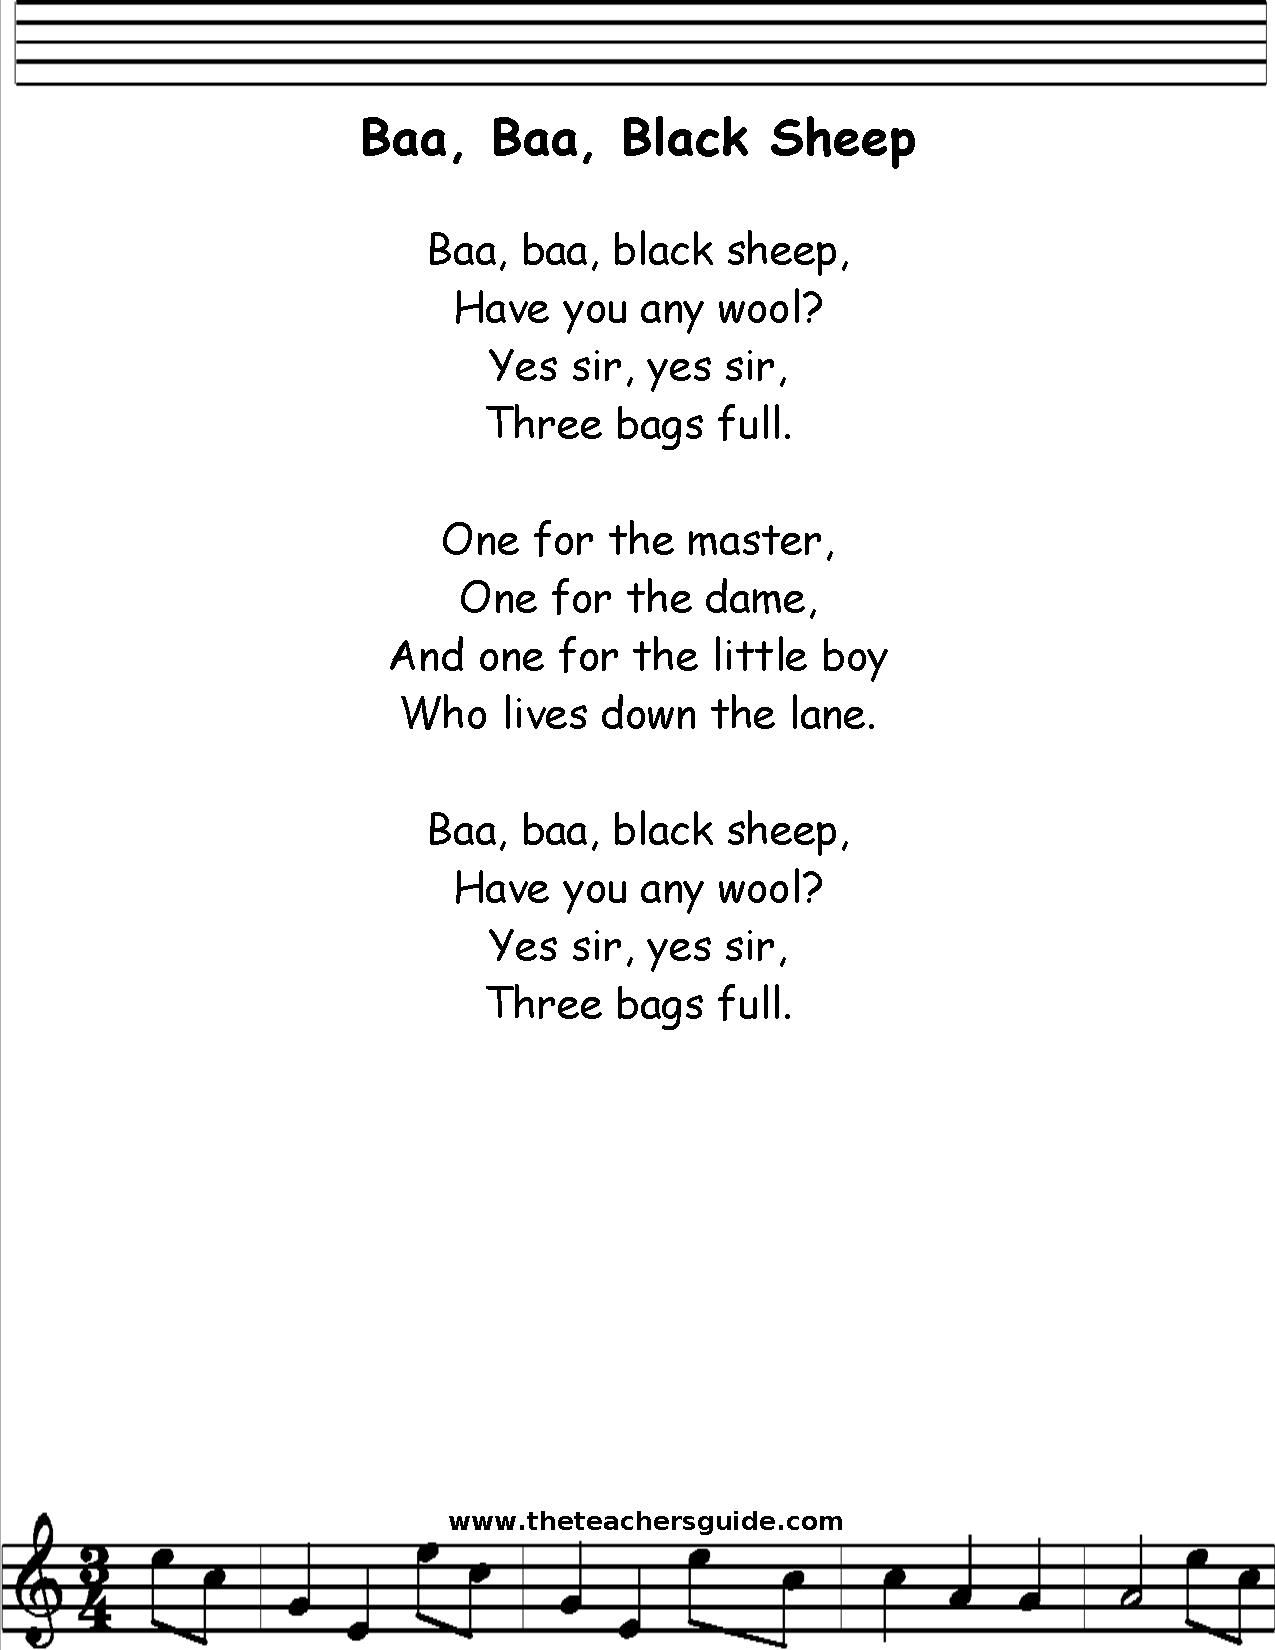 Baa Baa Black Sheep Lyrics Printout